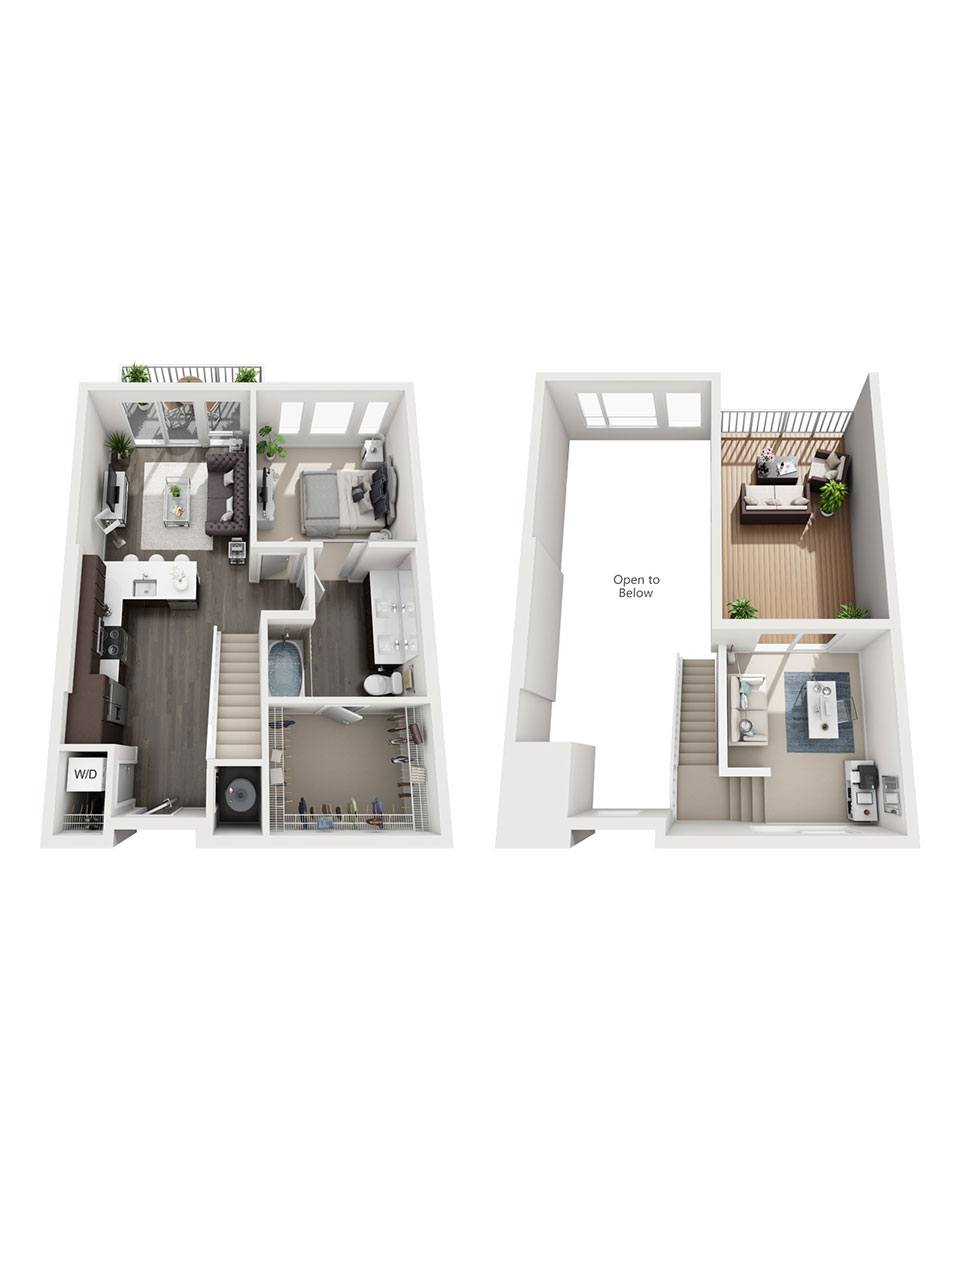 Plan 1 Bedroom – A1L | 1 Bath